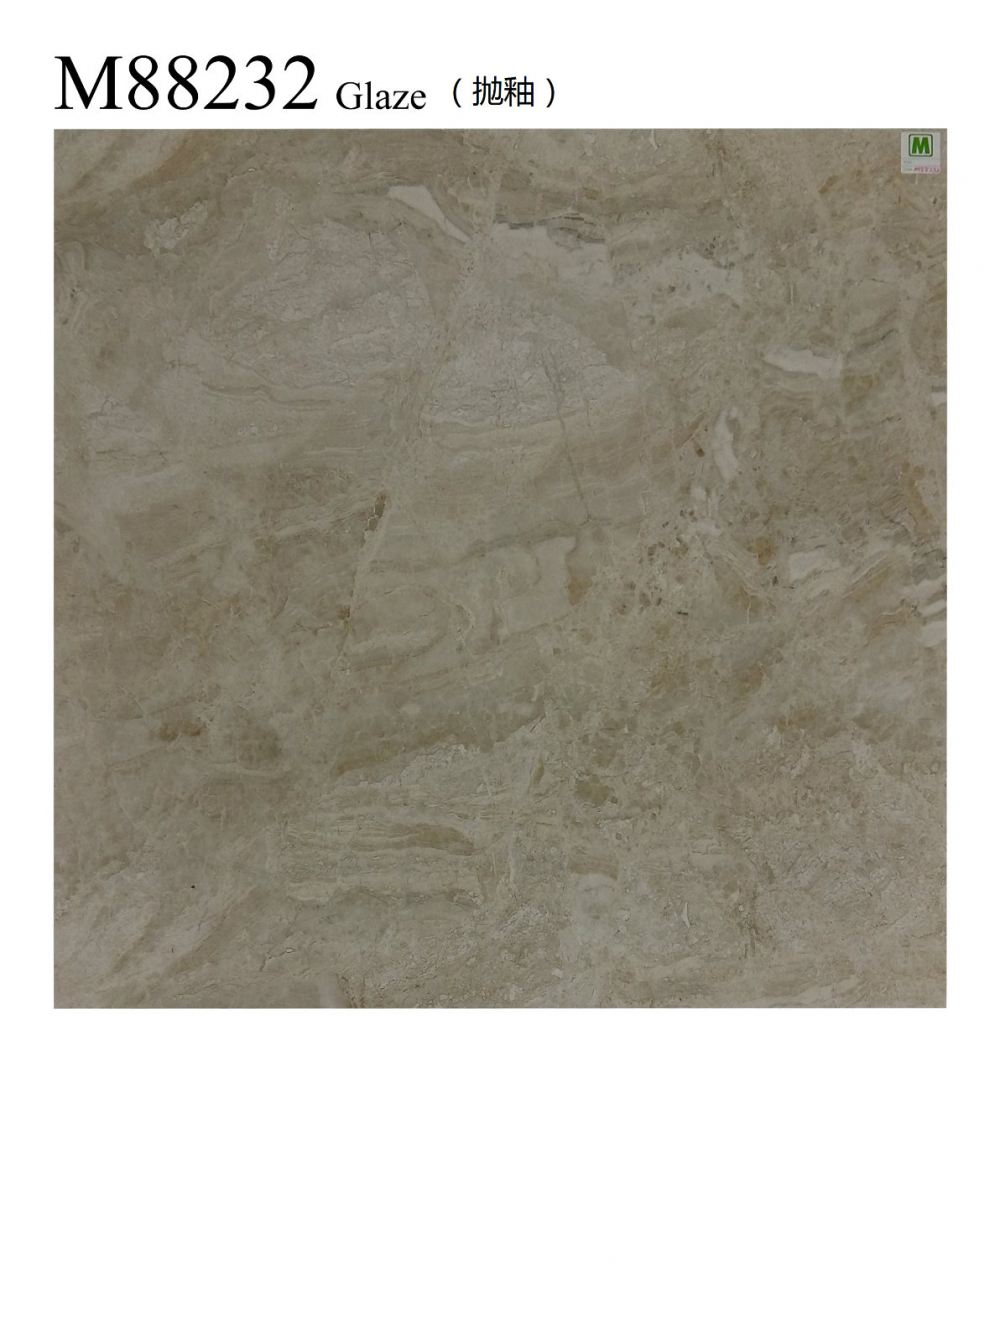 M88232 FLOOR TILES TILE Supplier, Suppliers, Supply, Supplies ~ Itoli Ceramic Sdn Bhd